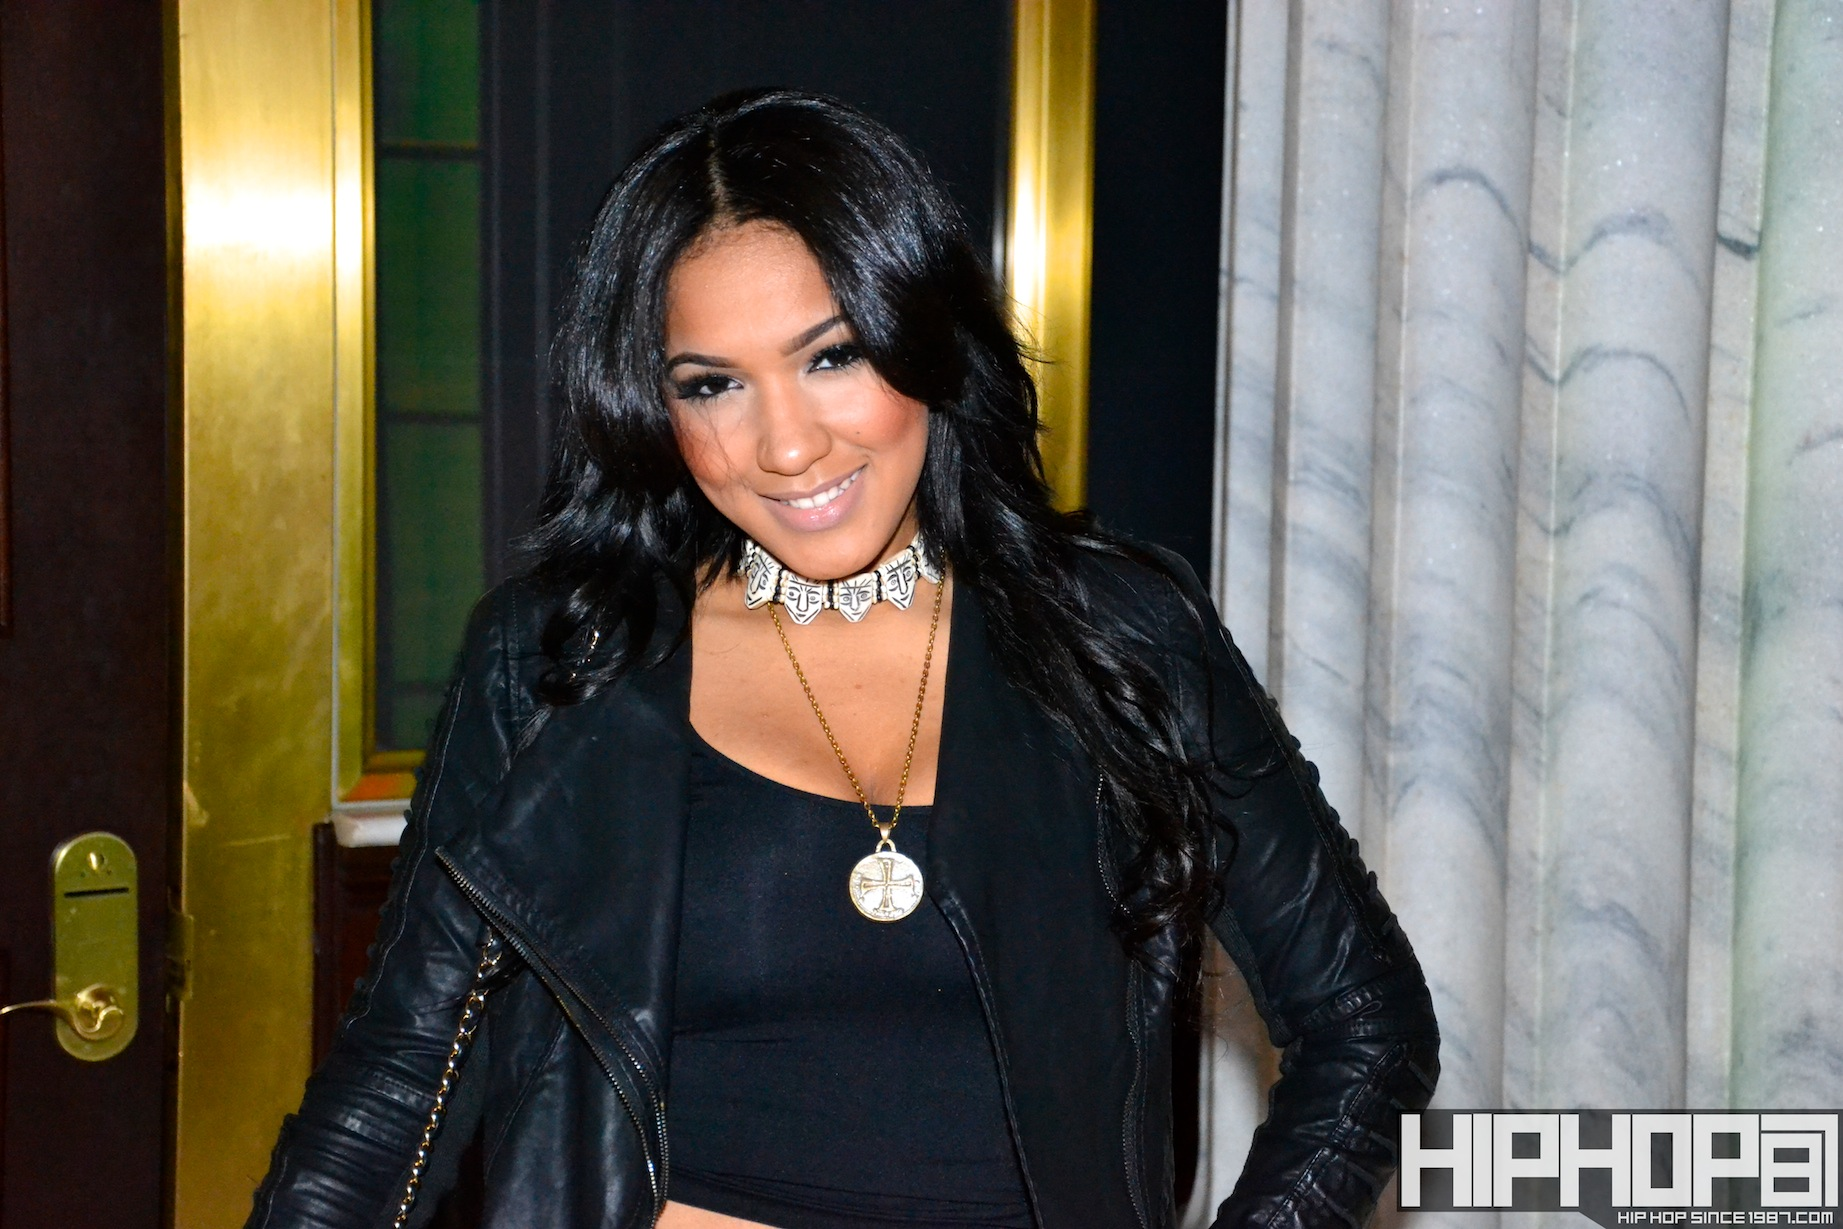 Yaris-Sanchez-3-18-12-4 Yaris Sanchez (@Yaris_Sanchez) Visits Club Onyx In Philly (3/18/12) Photos